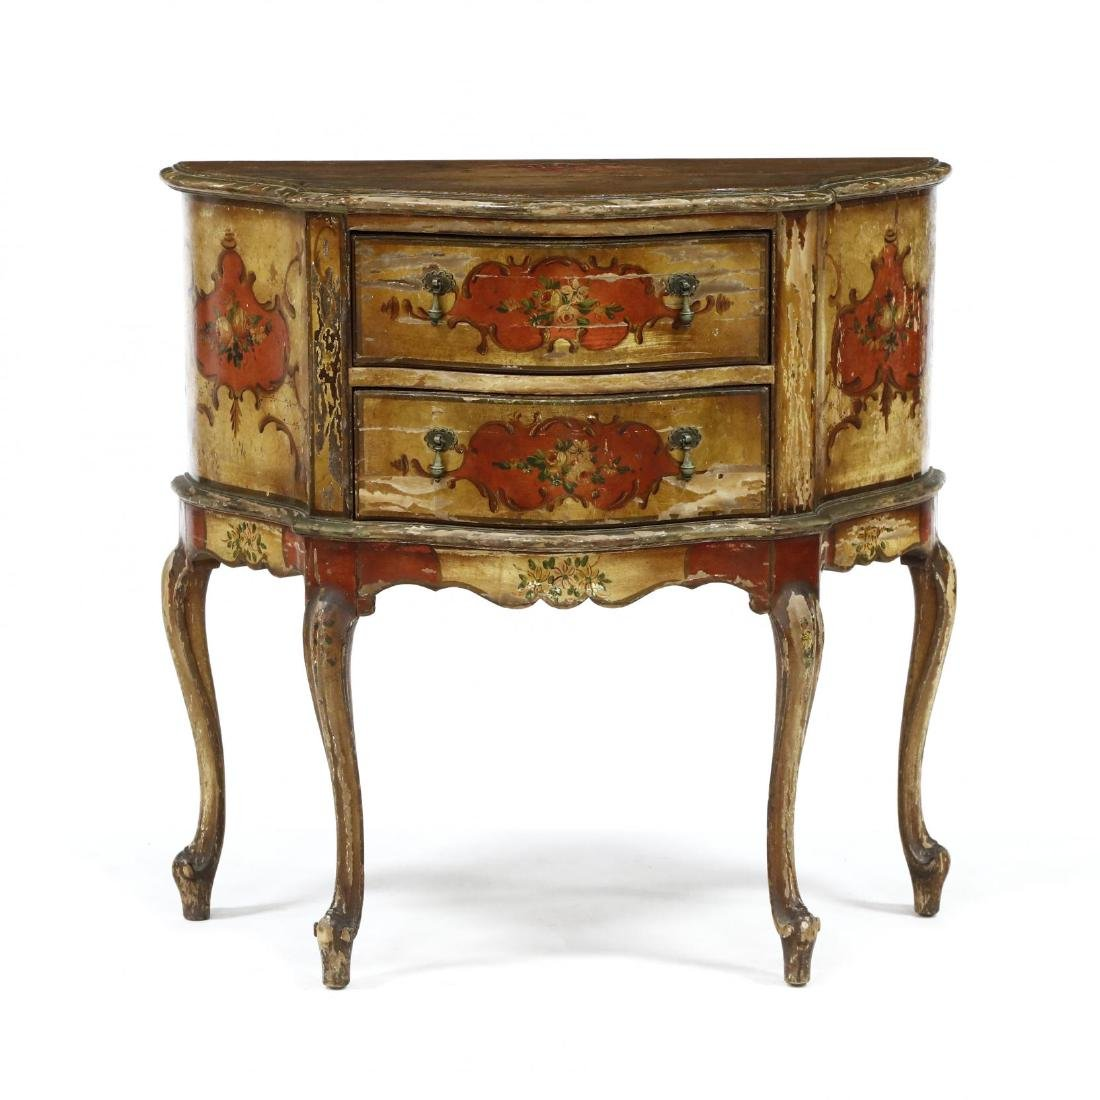 Italian Paint Decorated Diminutive Commode